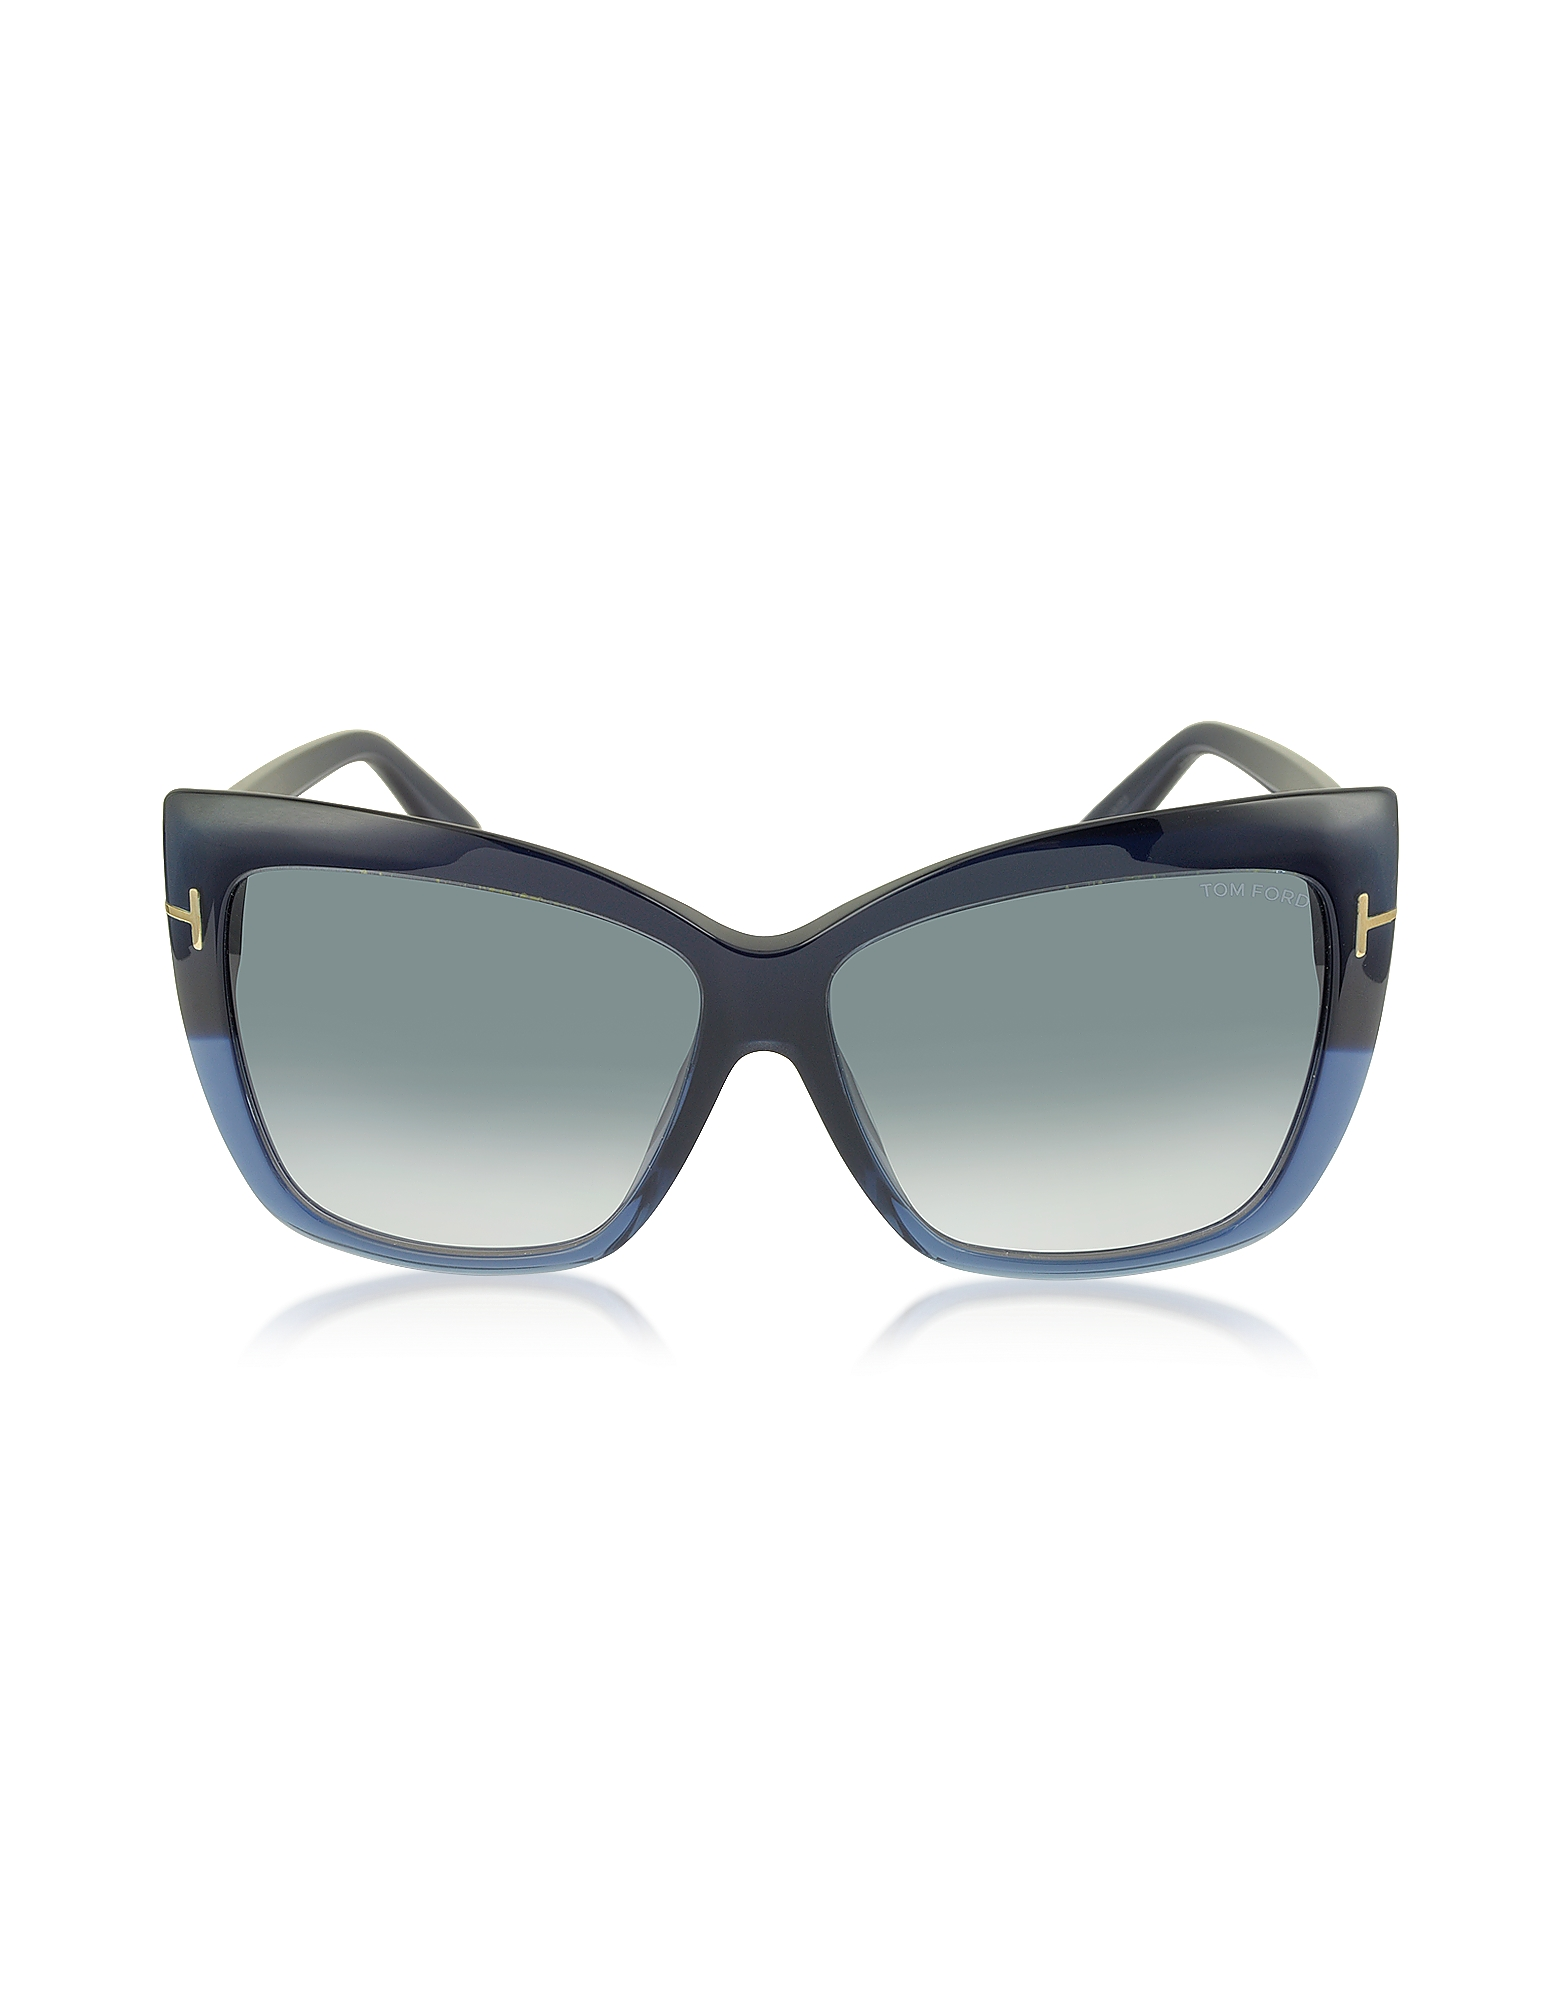 Tom Ford Sunglasses, IRINA FT0390 Oversized Squared Sunglasses